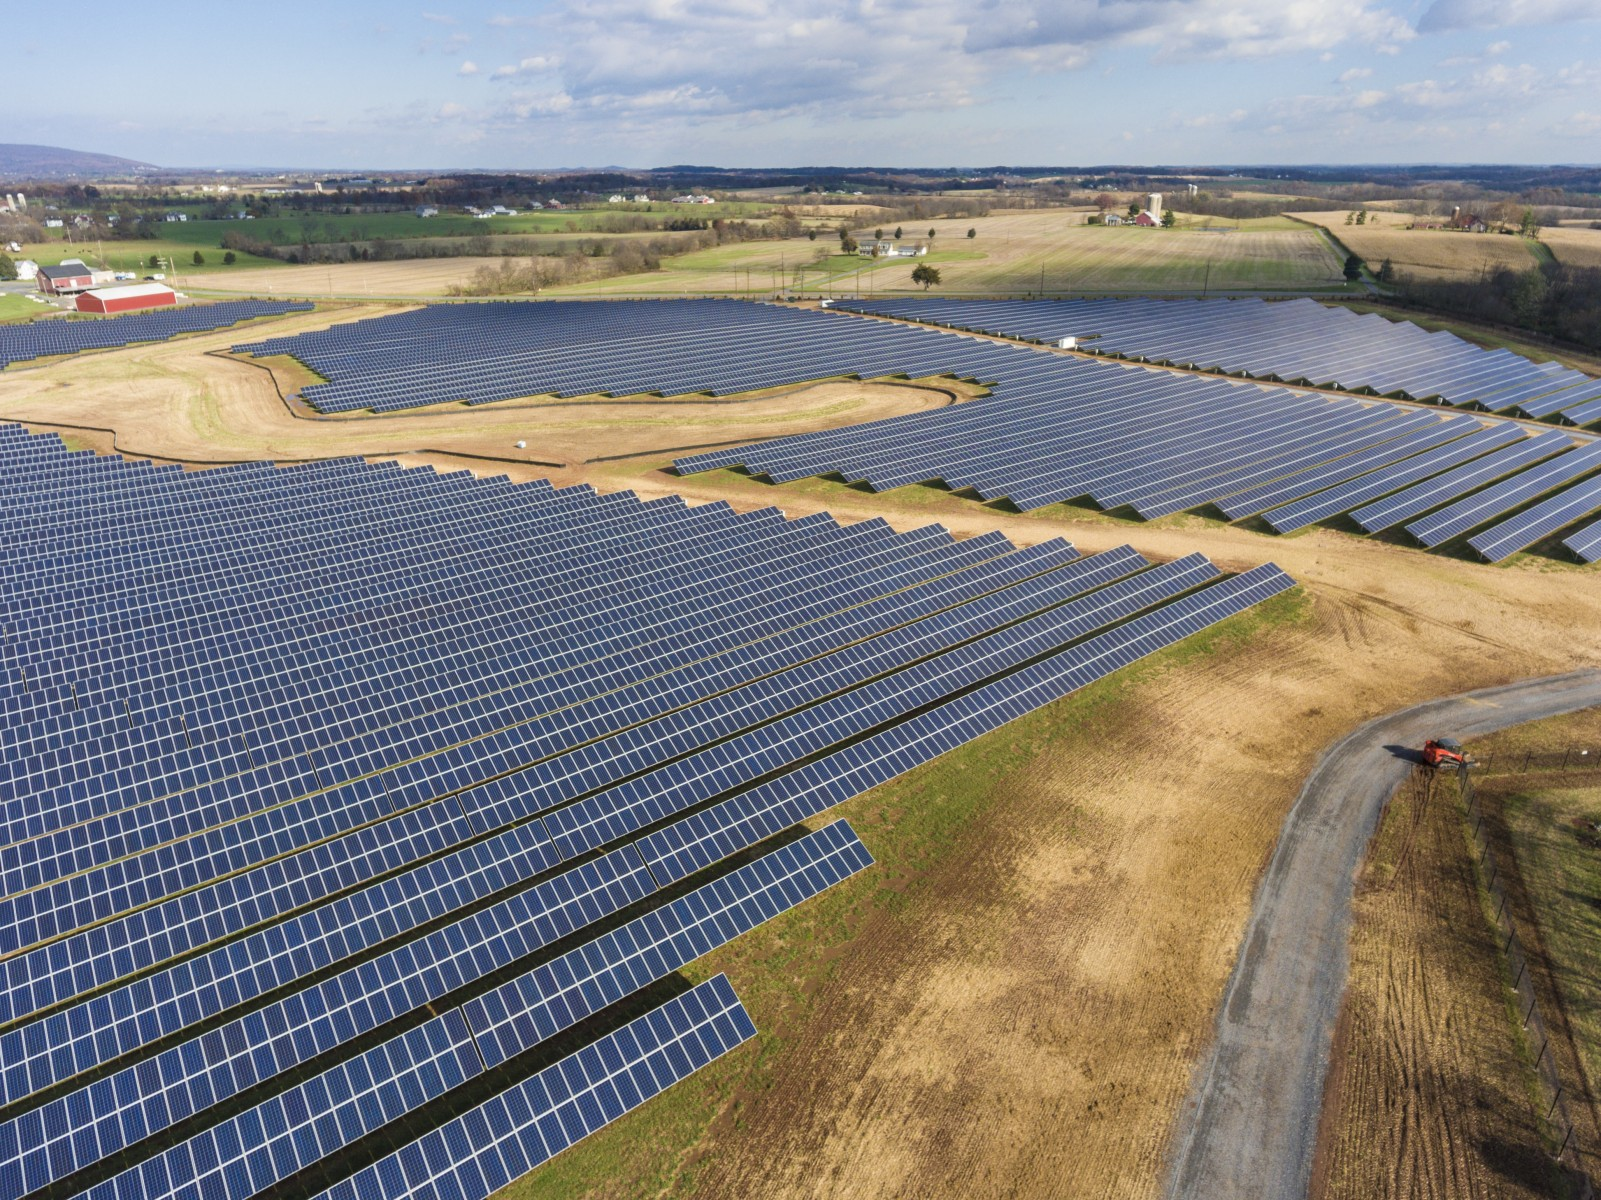 National Geographic is purchasing the renewable resource from Baker Point Solar, Cypress Creek Renewables' first solar site in Maryland, a facility that also provides an important habitat for pollinators like bees and butterflies, helping to maintain a planet in balance.